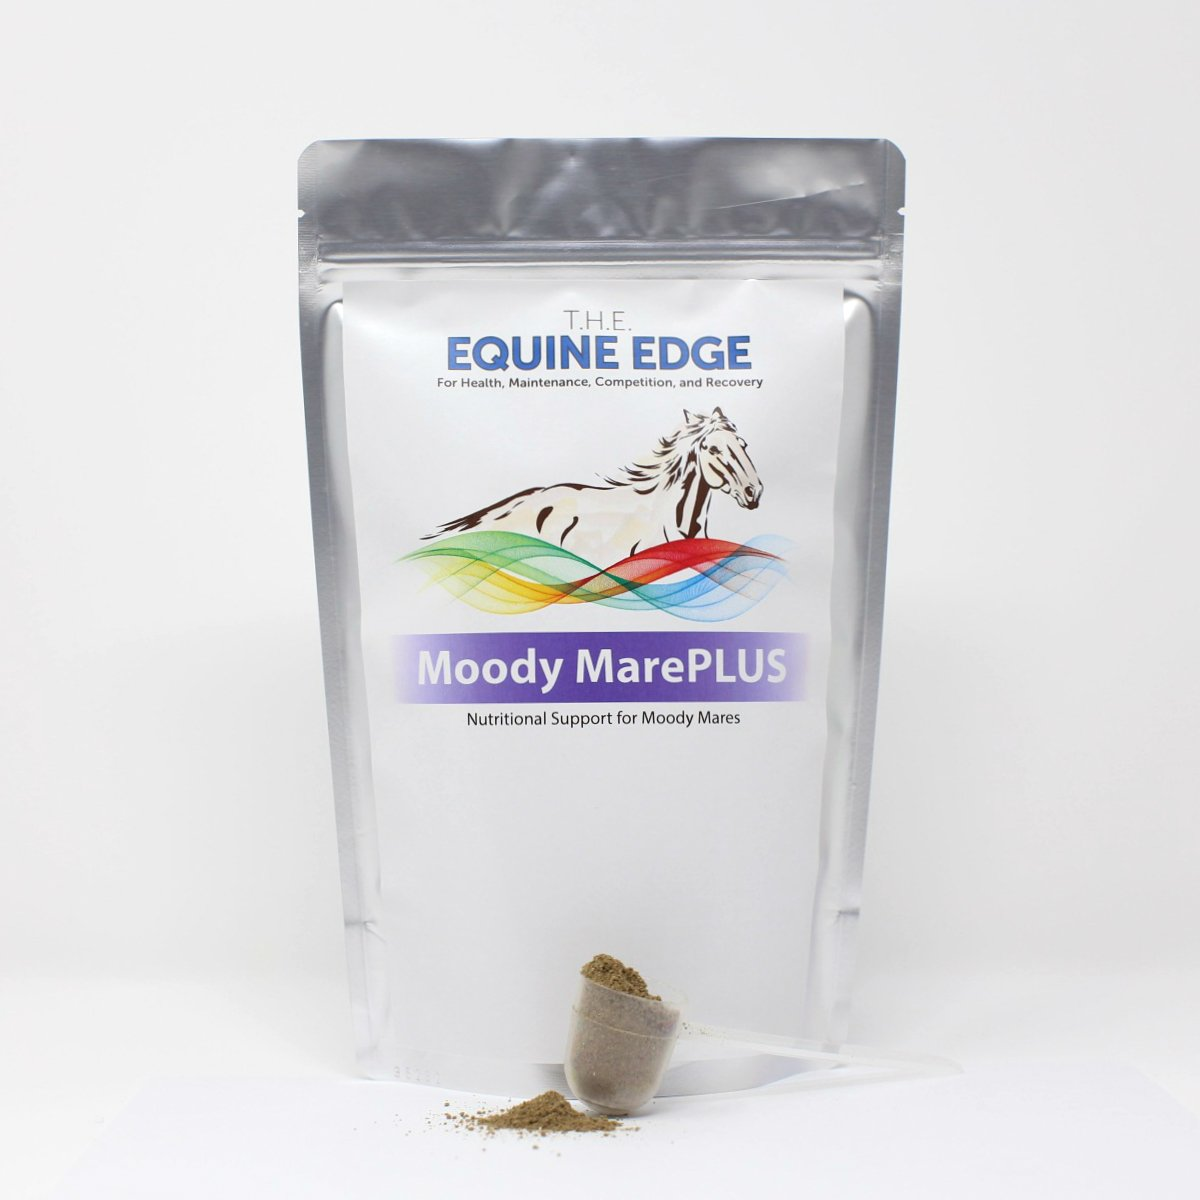 T.H.E. Equine Edge Moody MarePLUS - Extra Moody Mare, Gelding Calming Supplement, 30 Servings by T.H.E. Equine Edge